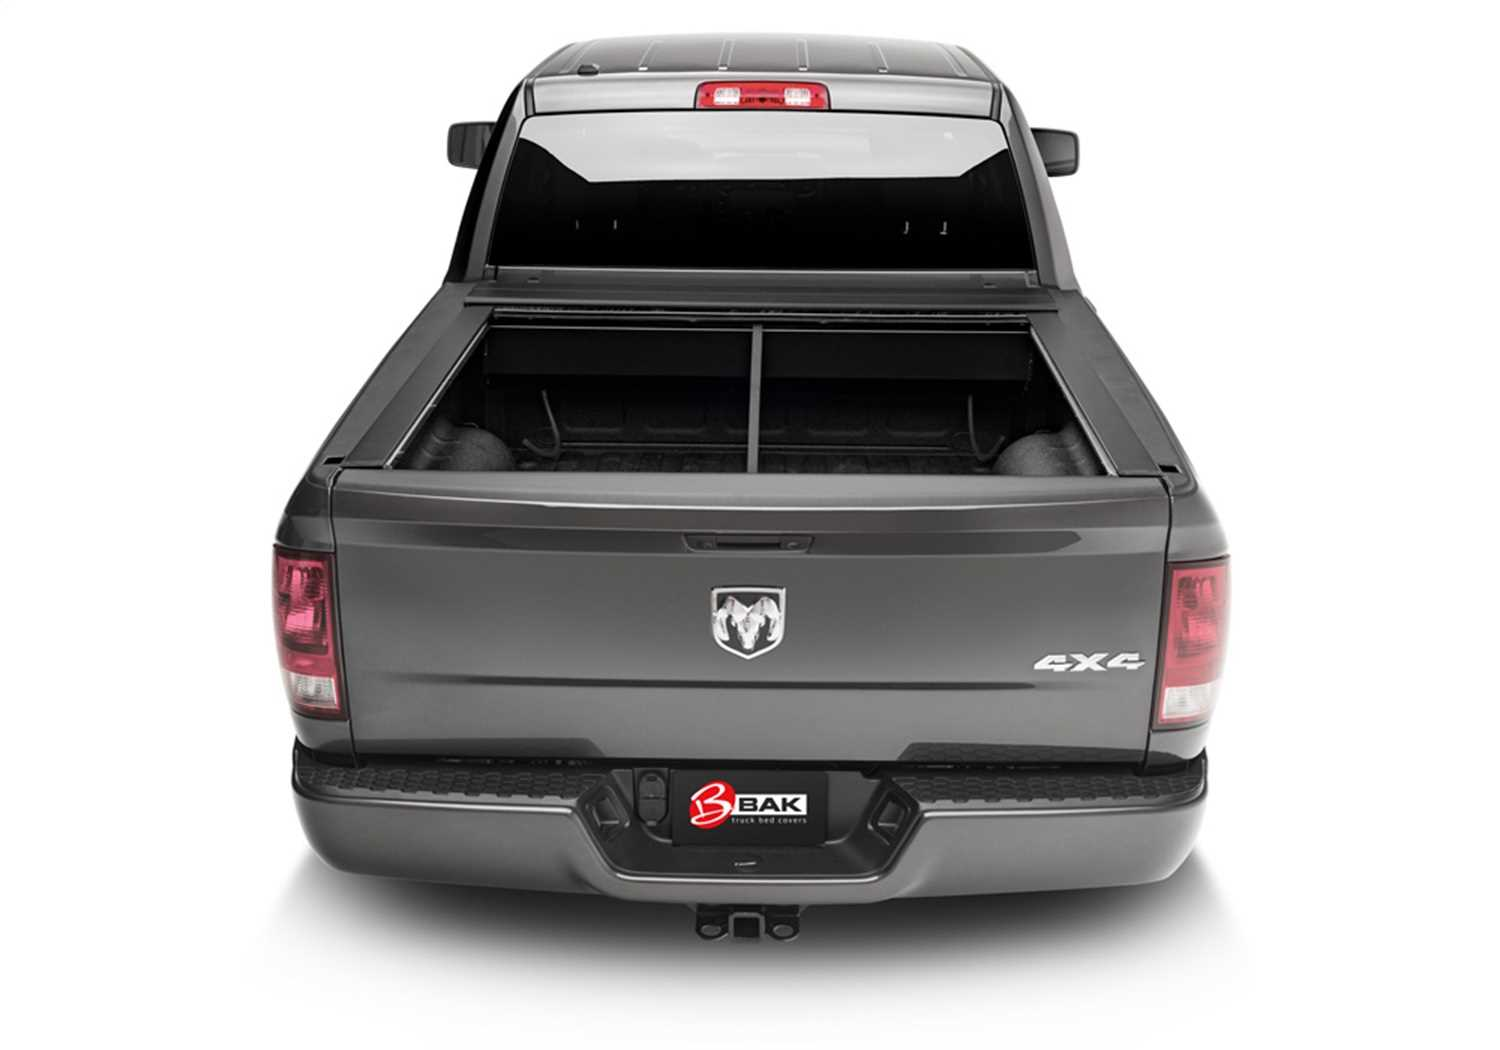 R25602 Bak Industries Vortrak Retractable Truck Bed Cover